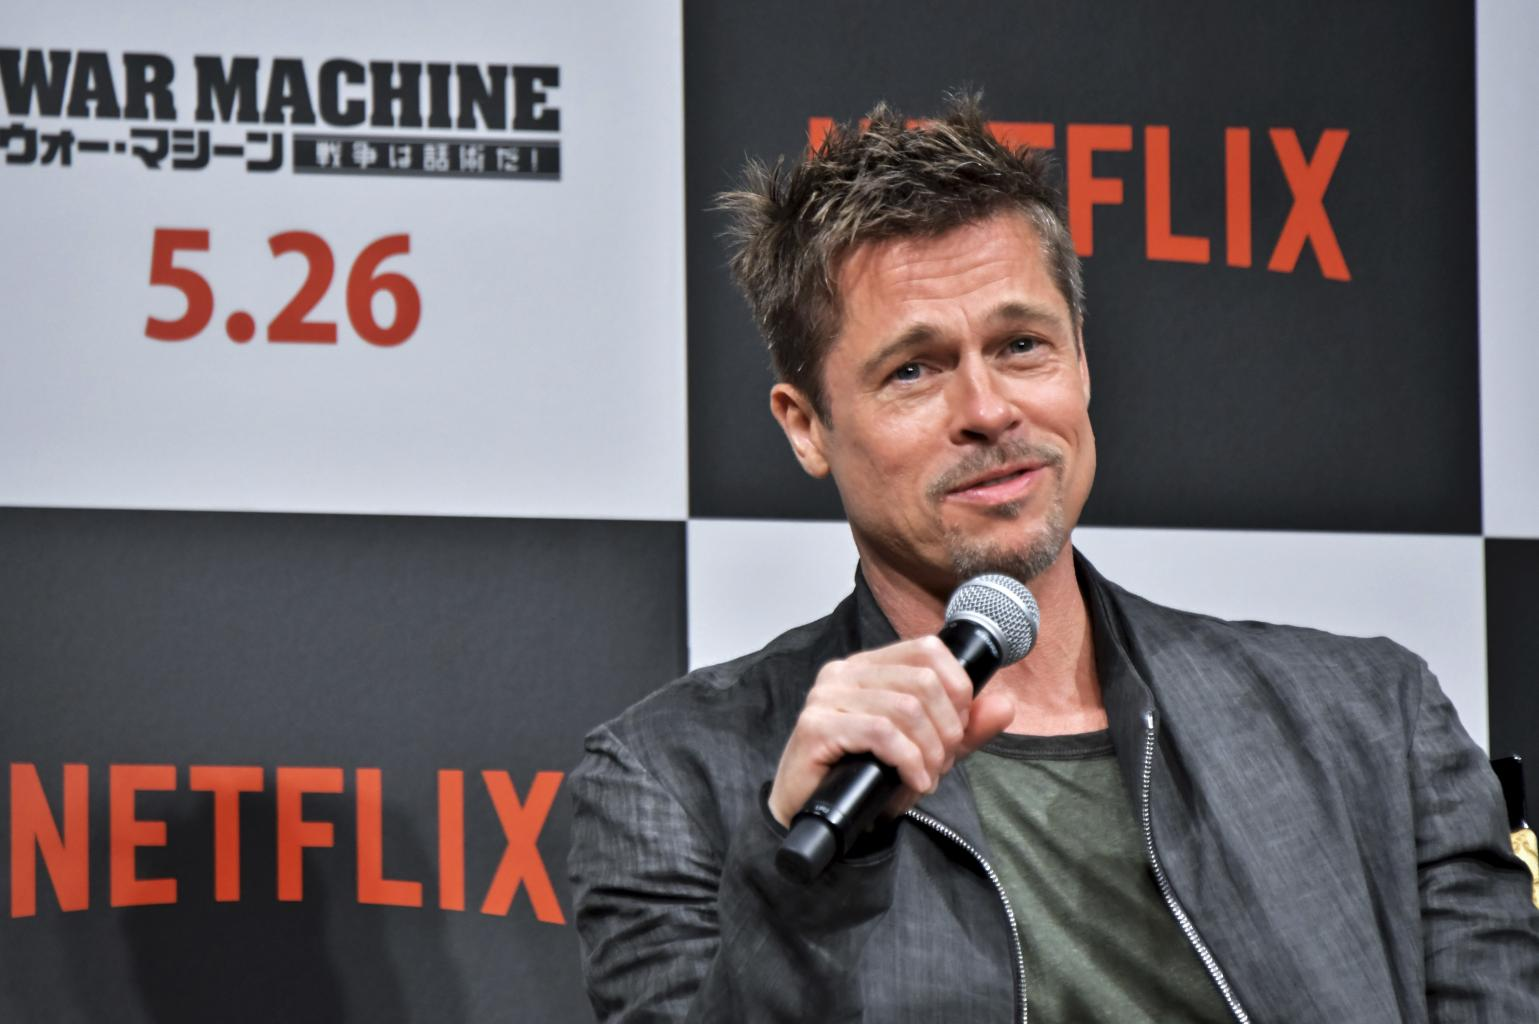 Brad Pitt Says He Can 'Compartmentalize' Private And Public Life, Talks Surviving 'Mistakes'